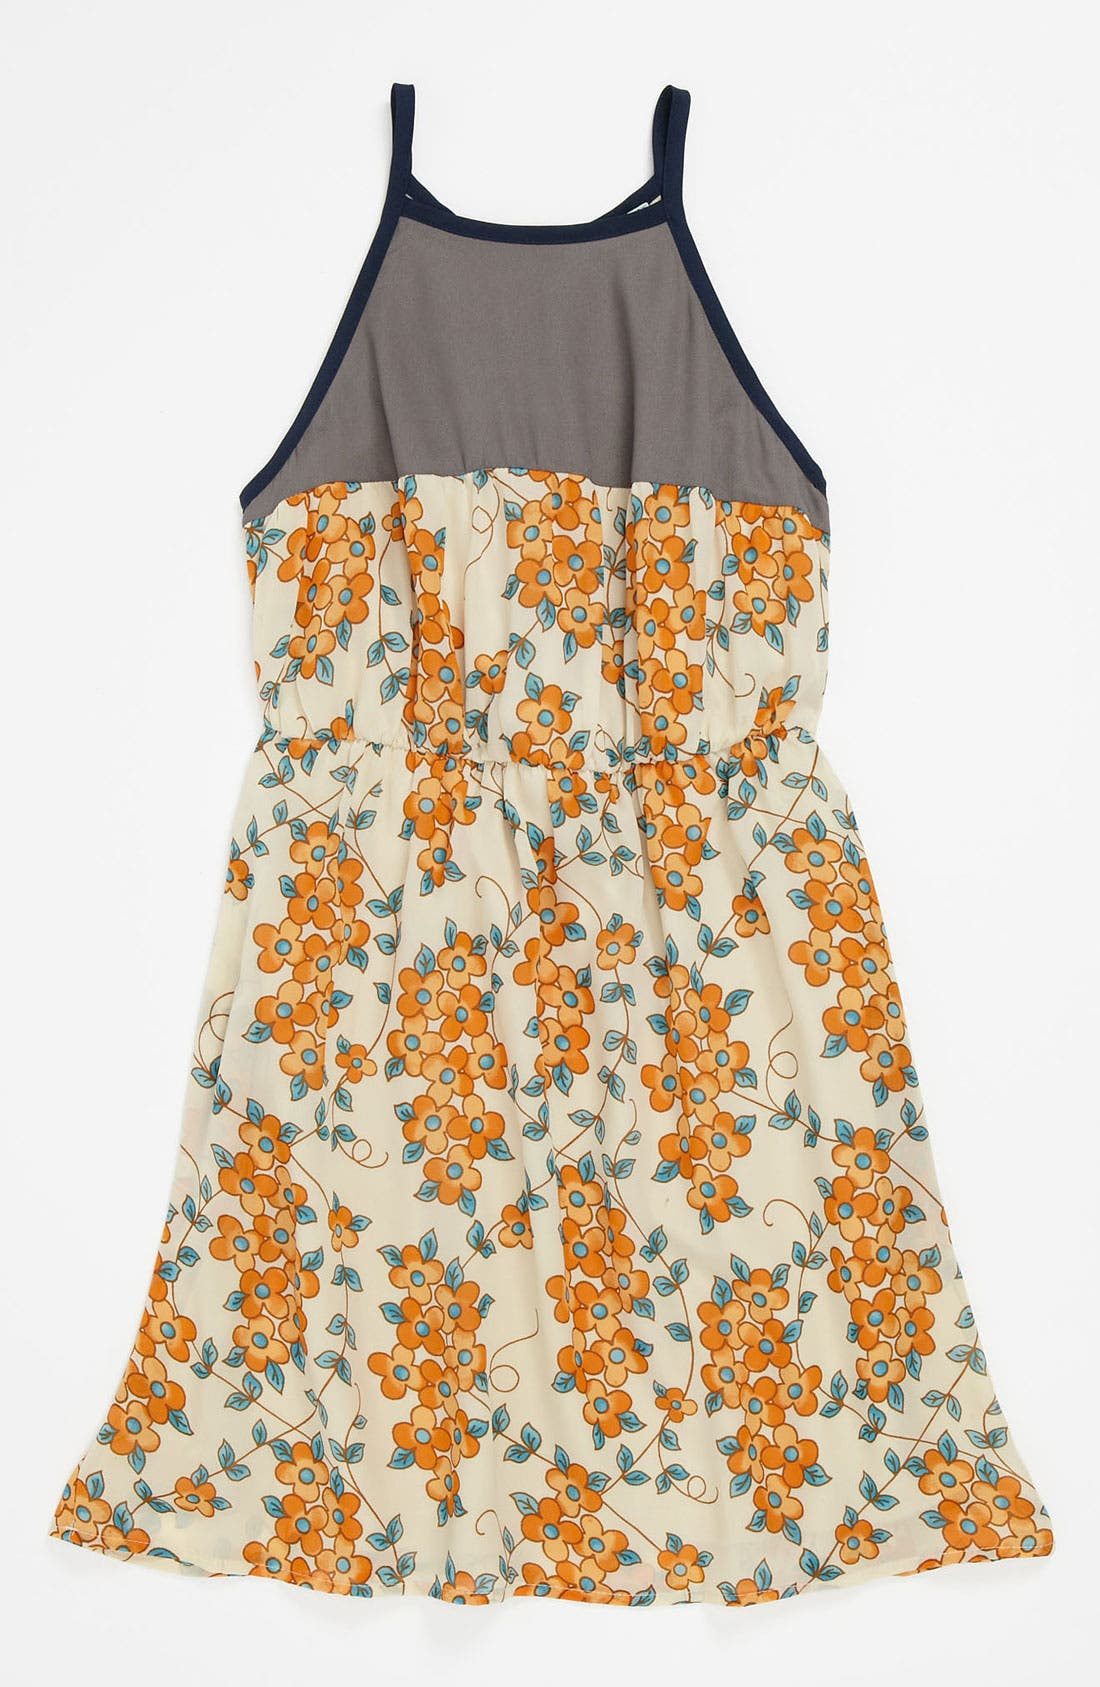 Alternate Image 1 Selected - Mia Chica Print Dress (Little Girls & Big Girls)